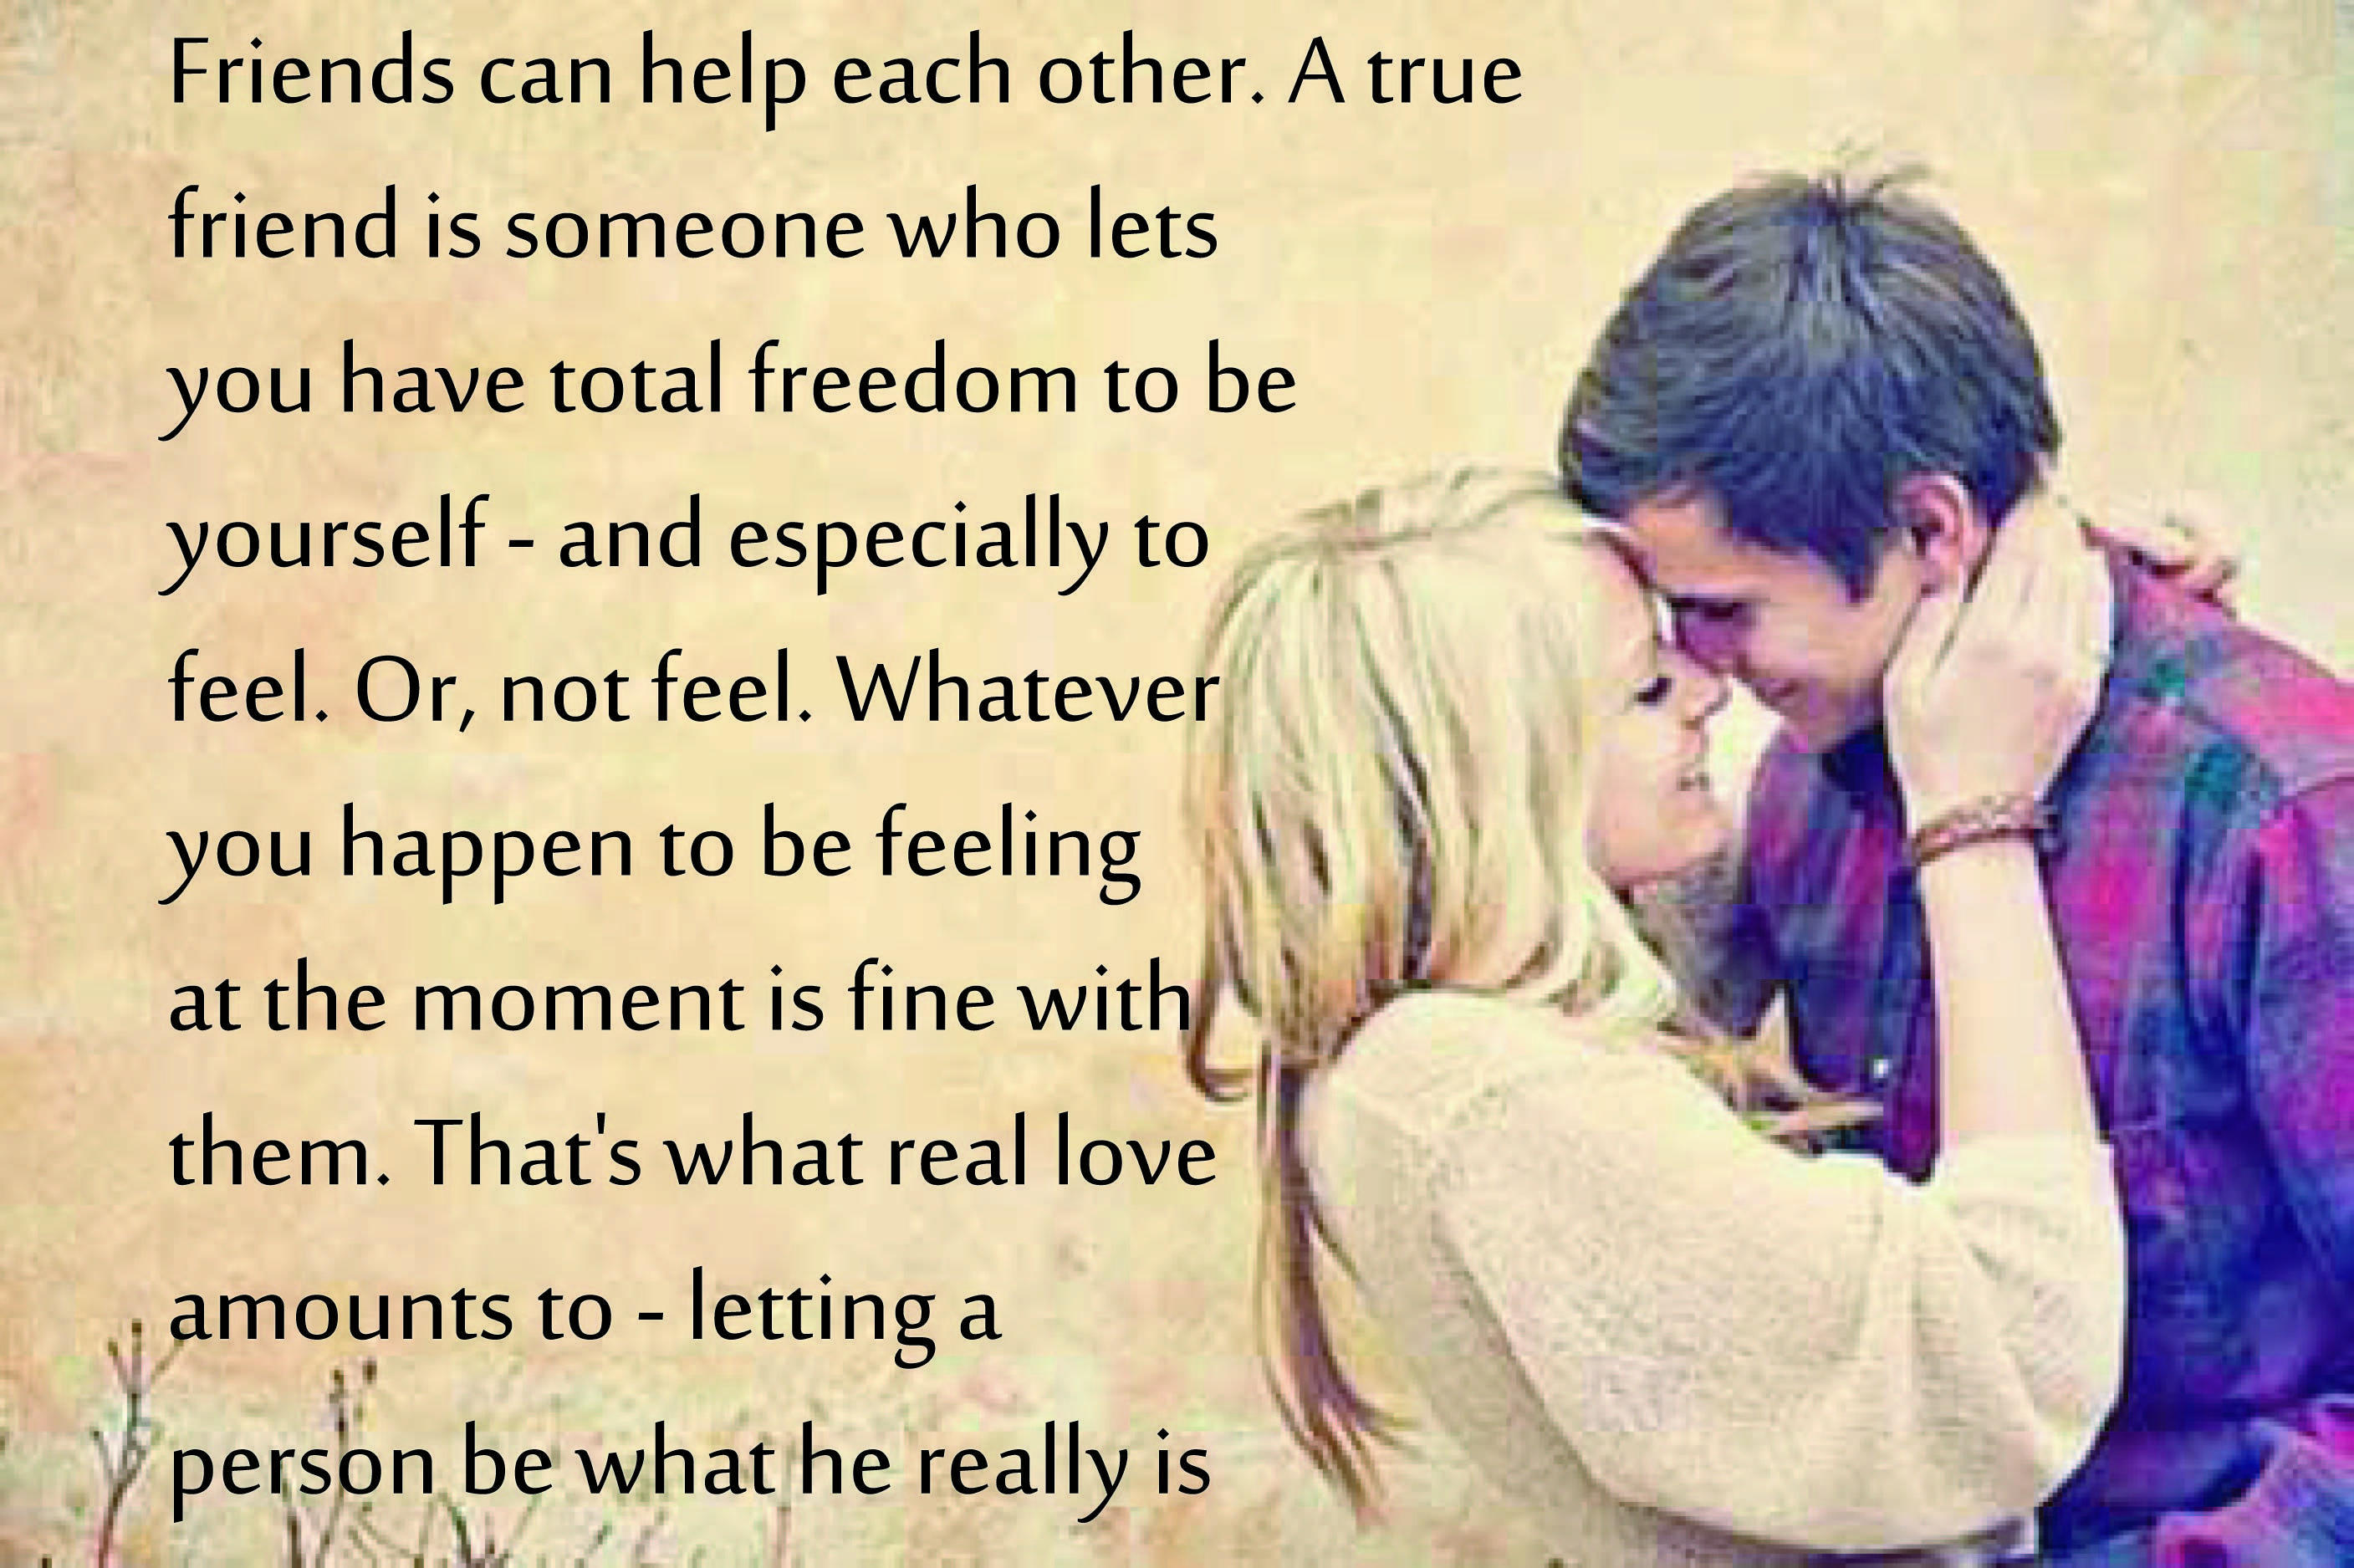 Looking for Famous Love Quotes? Here are 10 Famous Love Quotes   Best Love Quotes and Sayings, Check out now!